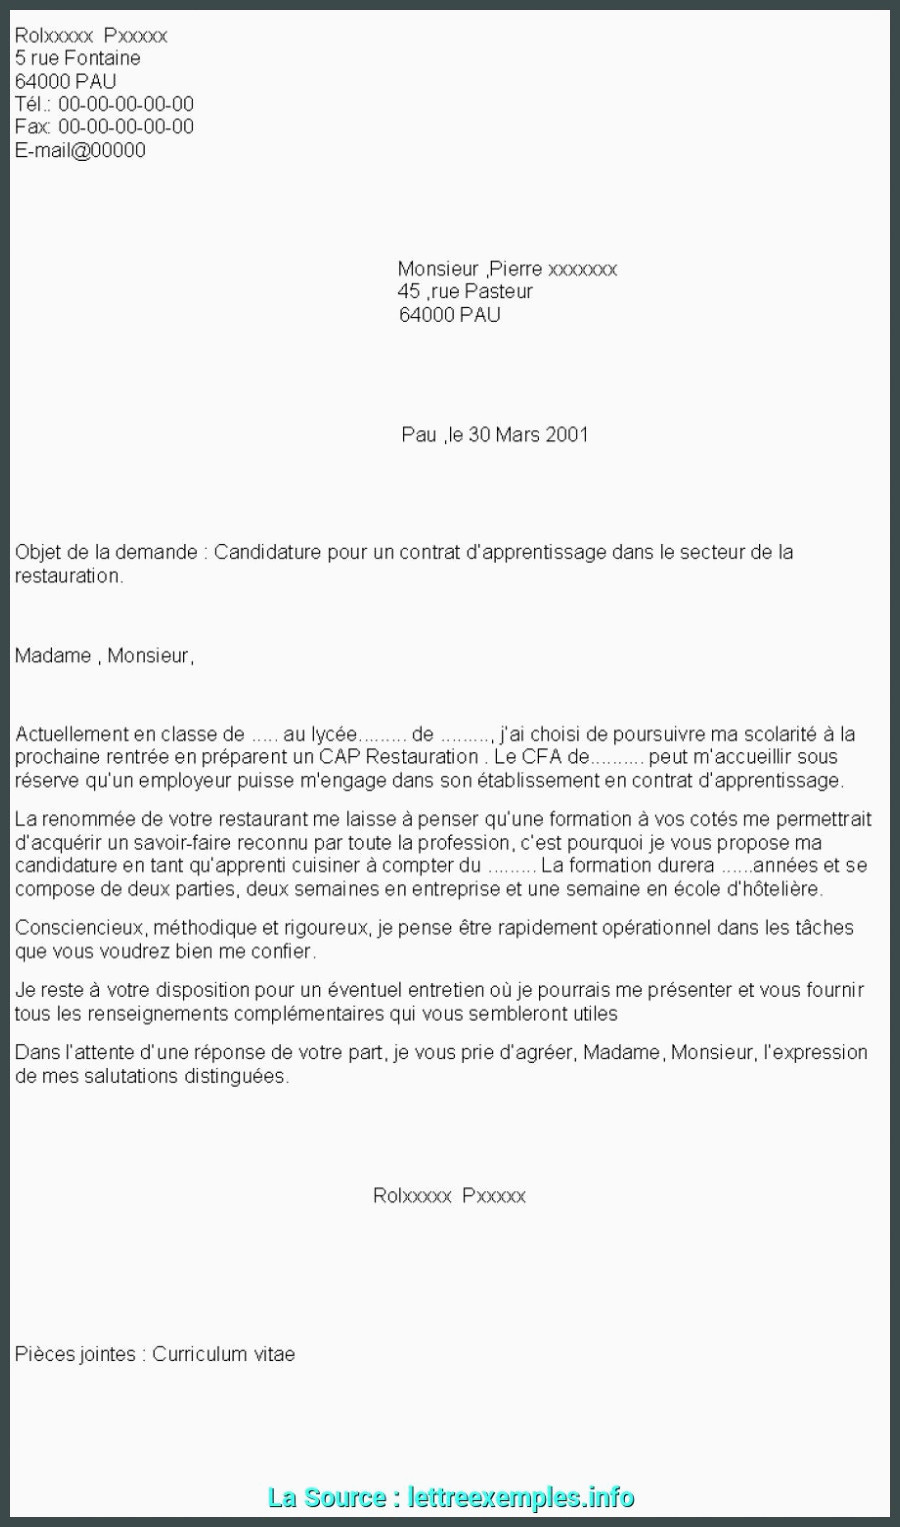 Lettre De Motivation formation Alternance Simple Lettre De Motivation Pour formation Alternance Lettre De